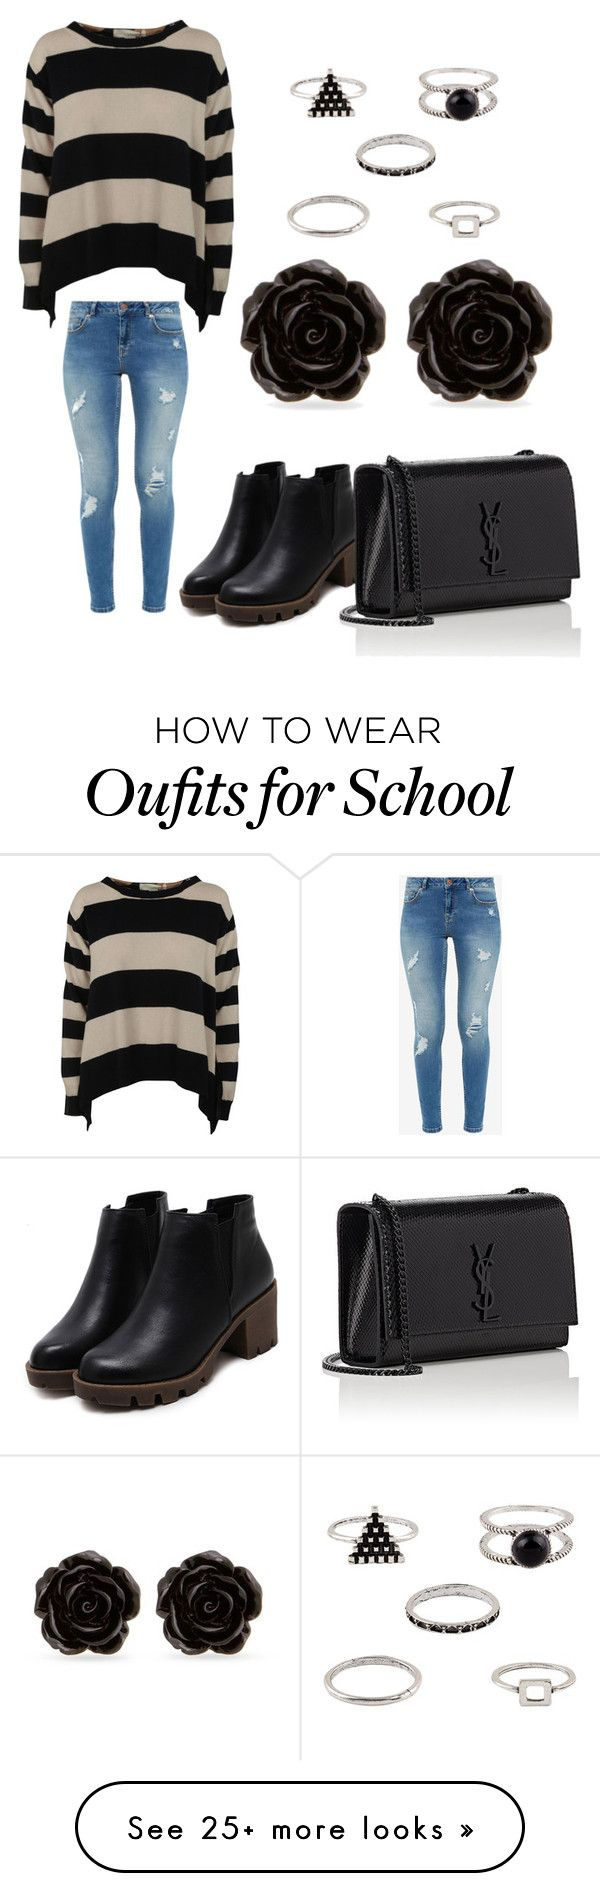 """School"" by cierrah-bridges on Polyvore featuring STELLA McCARTNEY, Ted Baker, Yves Saint Laurent and Erica Lyons"